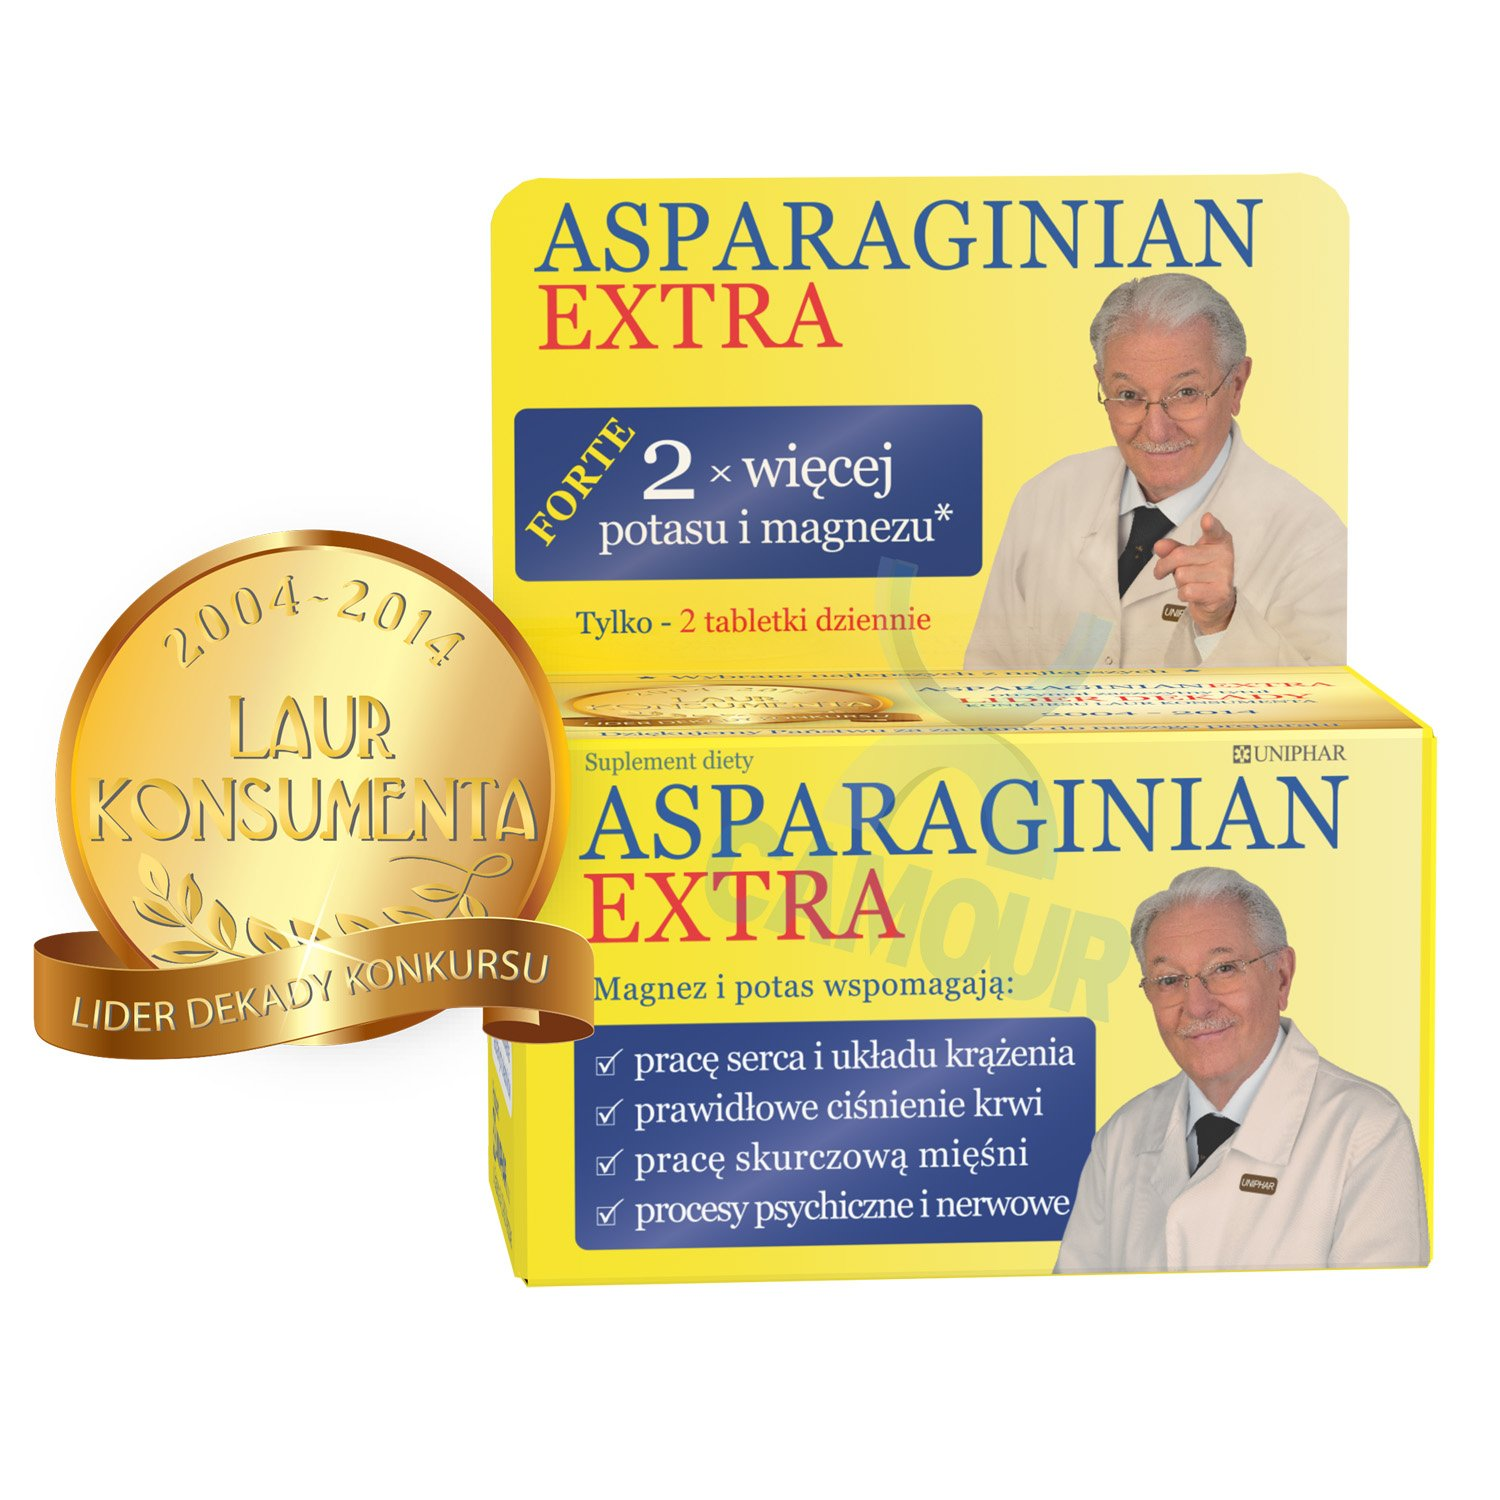 Asparaginian Extra Food Supplement Double Dose of Potassium & Magnesium 50 Tabs